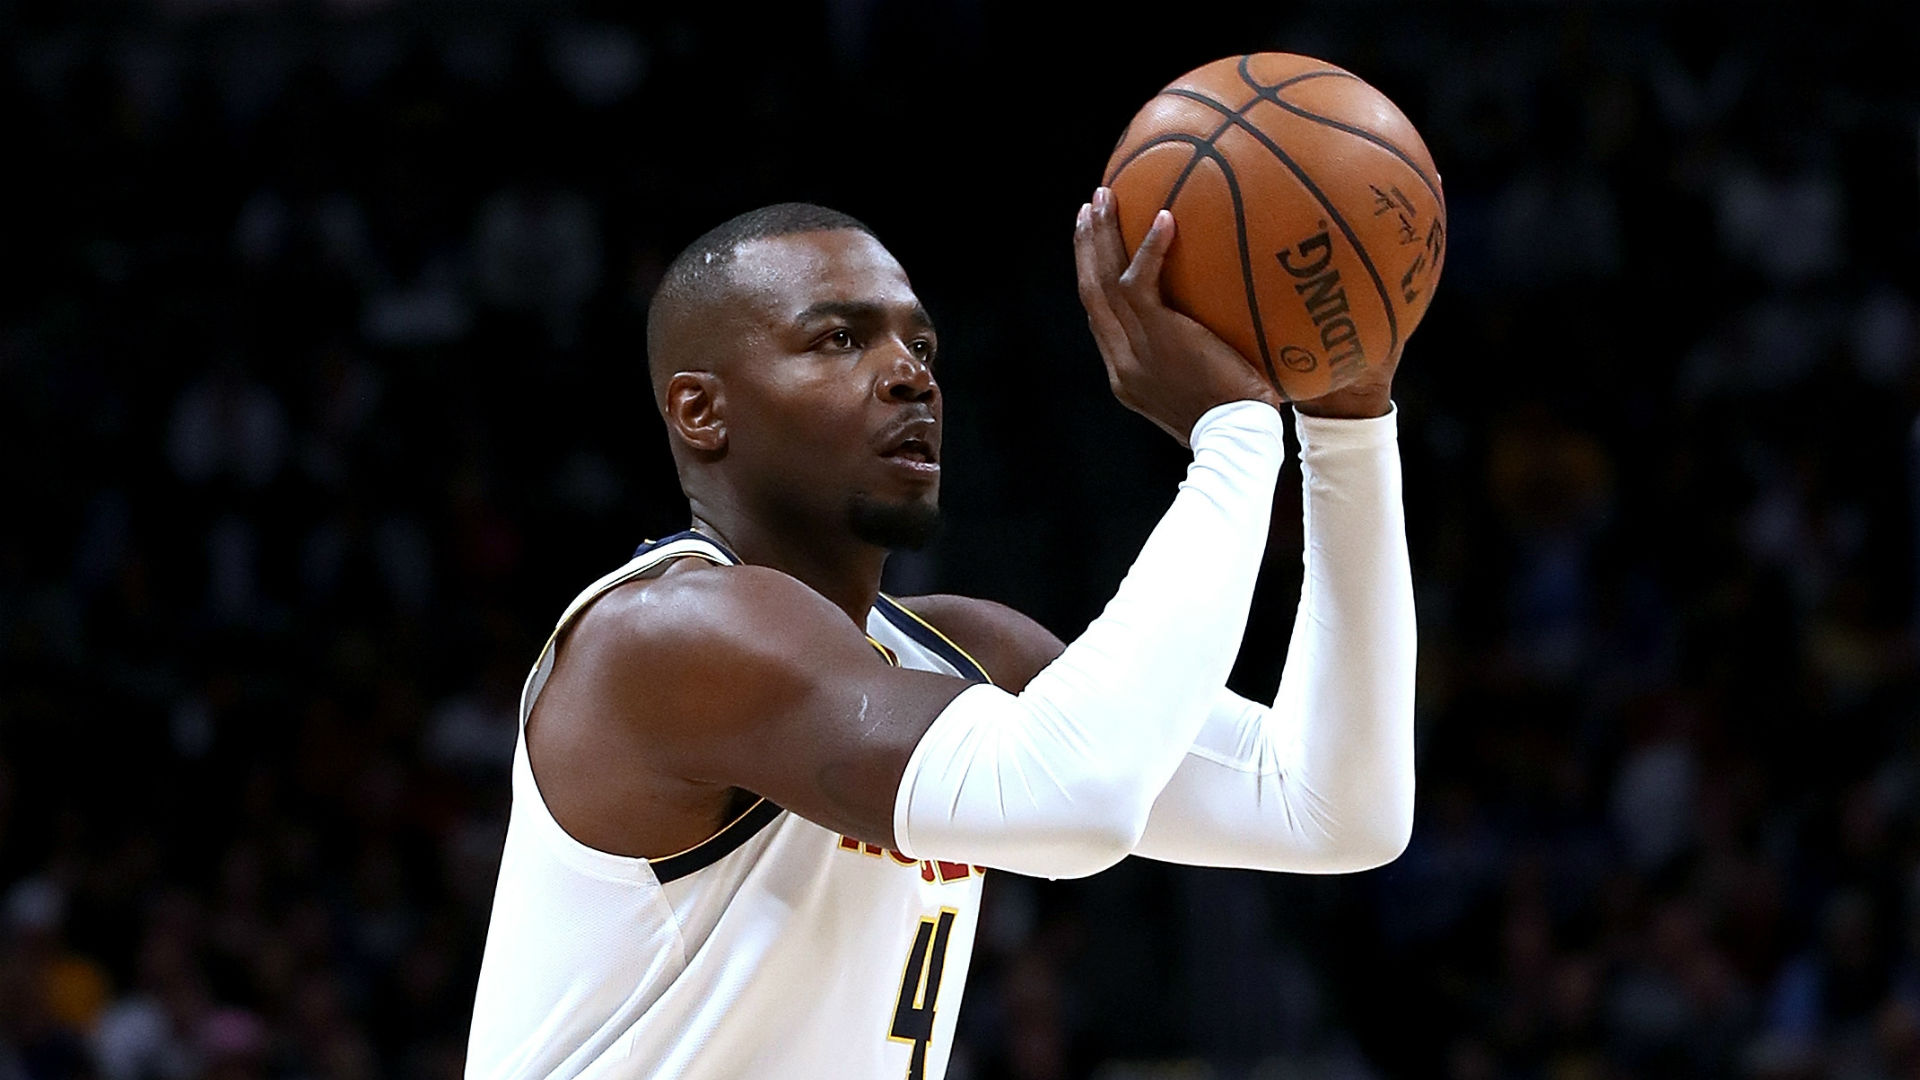 Millsap is 'the calm' of the Nuggets - Malone